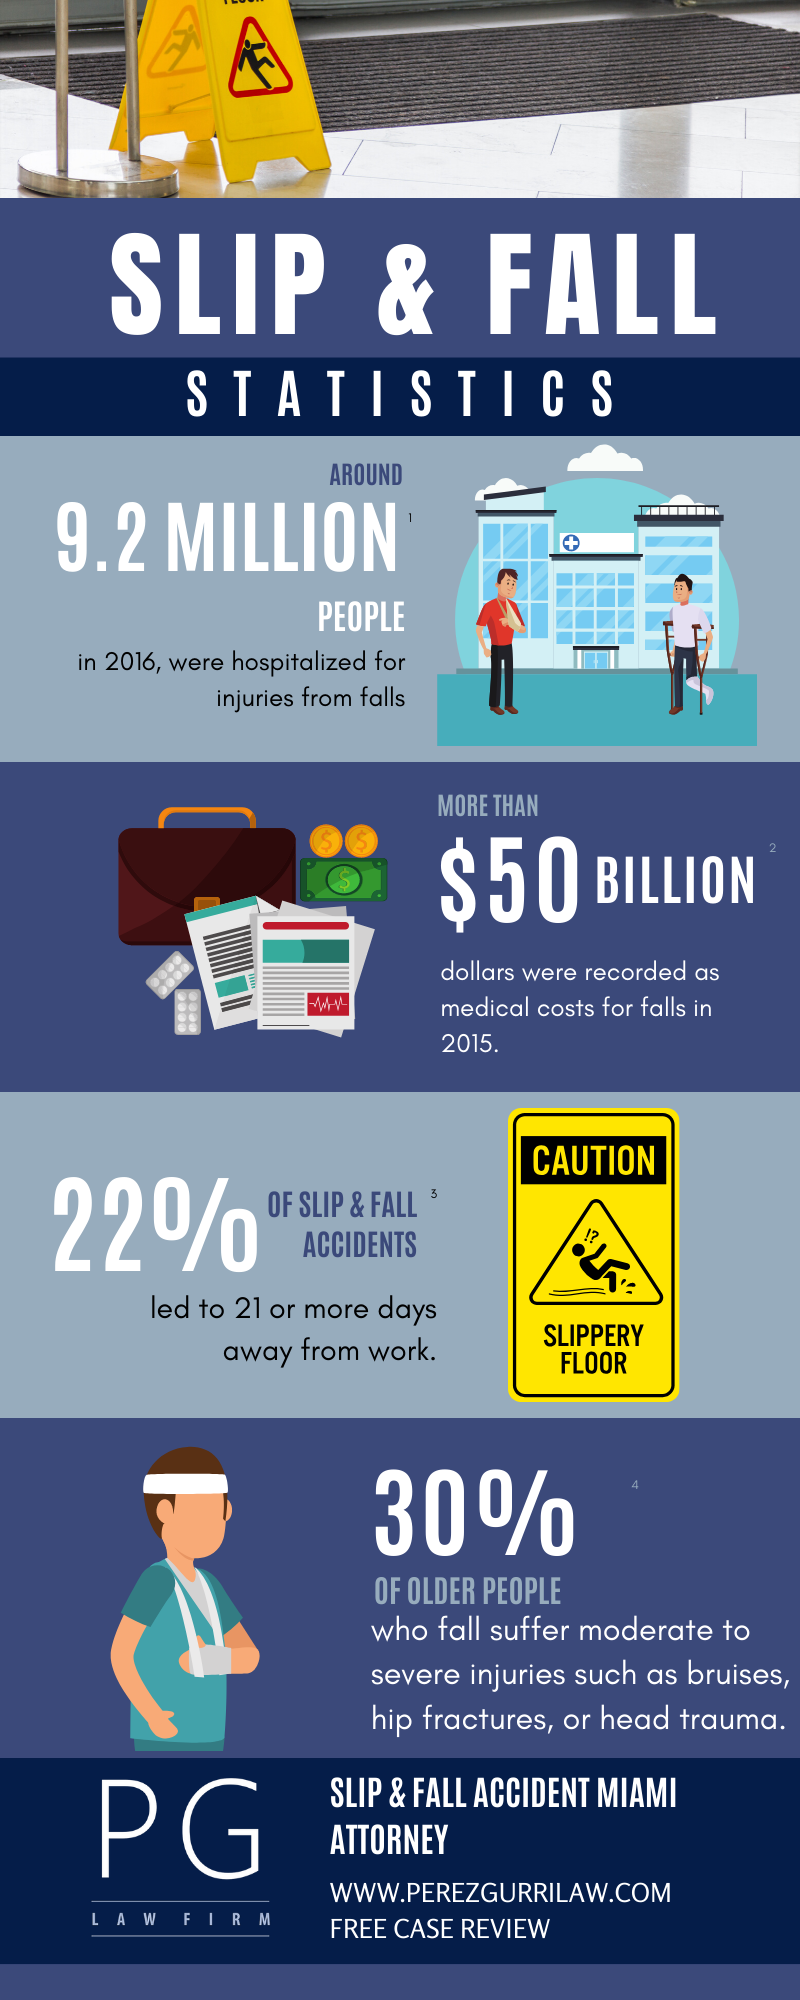 Statistics of total number of falls, costs of injuries, and other relevant information on slip and fall accidents.